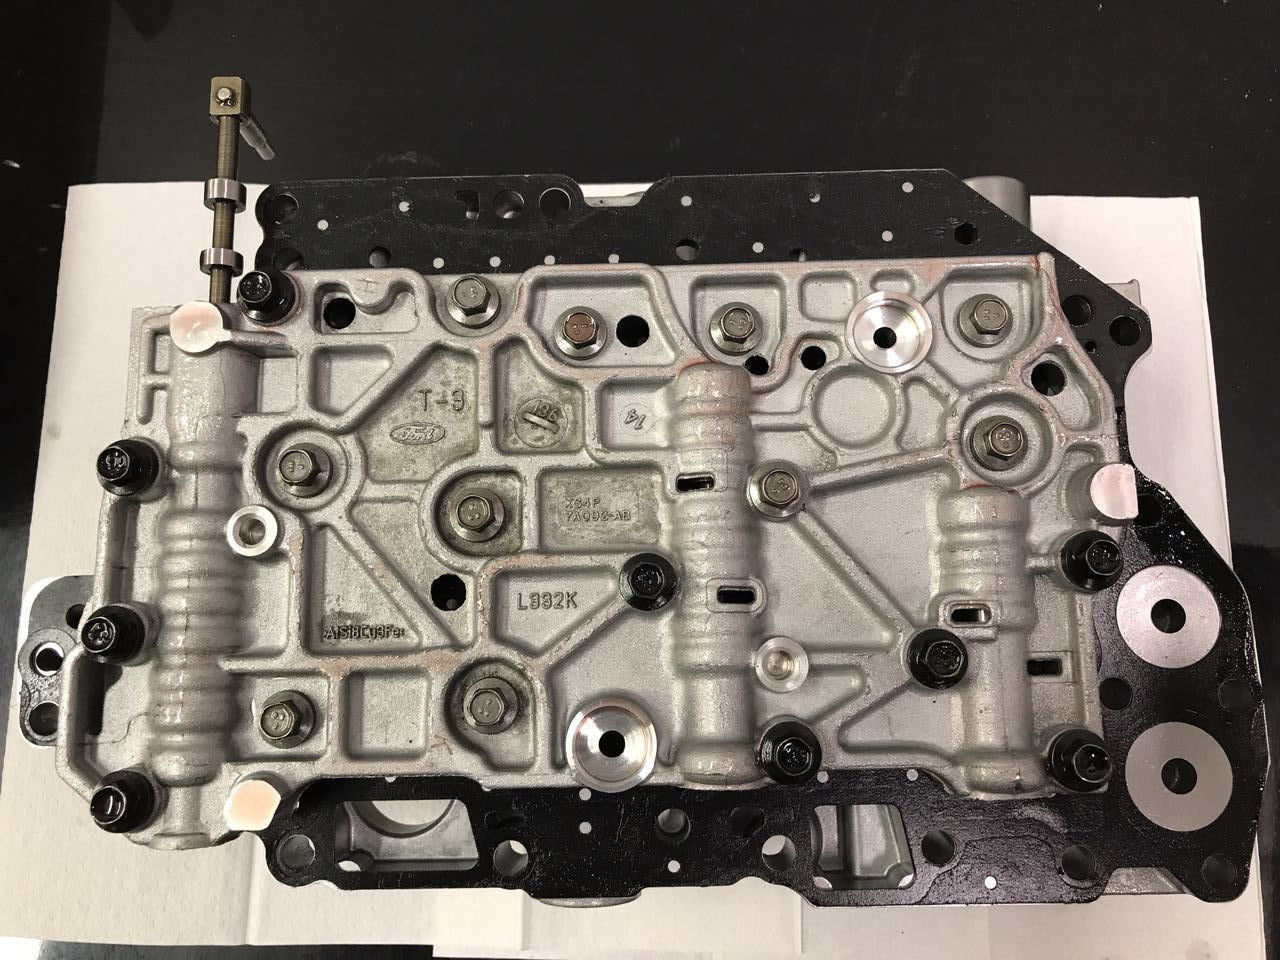 Genuine 4F27E Complete Transmission Valve Body Rear Cover Direct Forward Clutch Does not apply